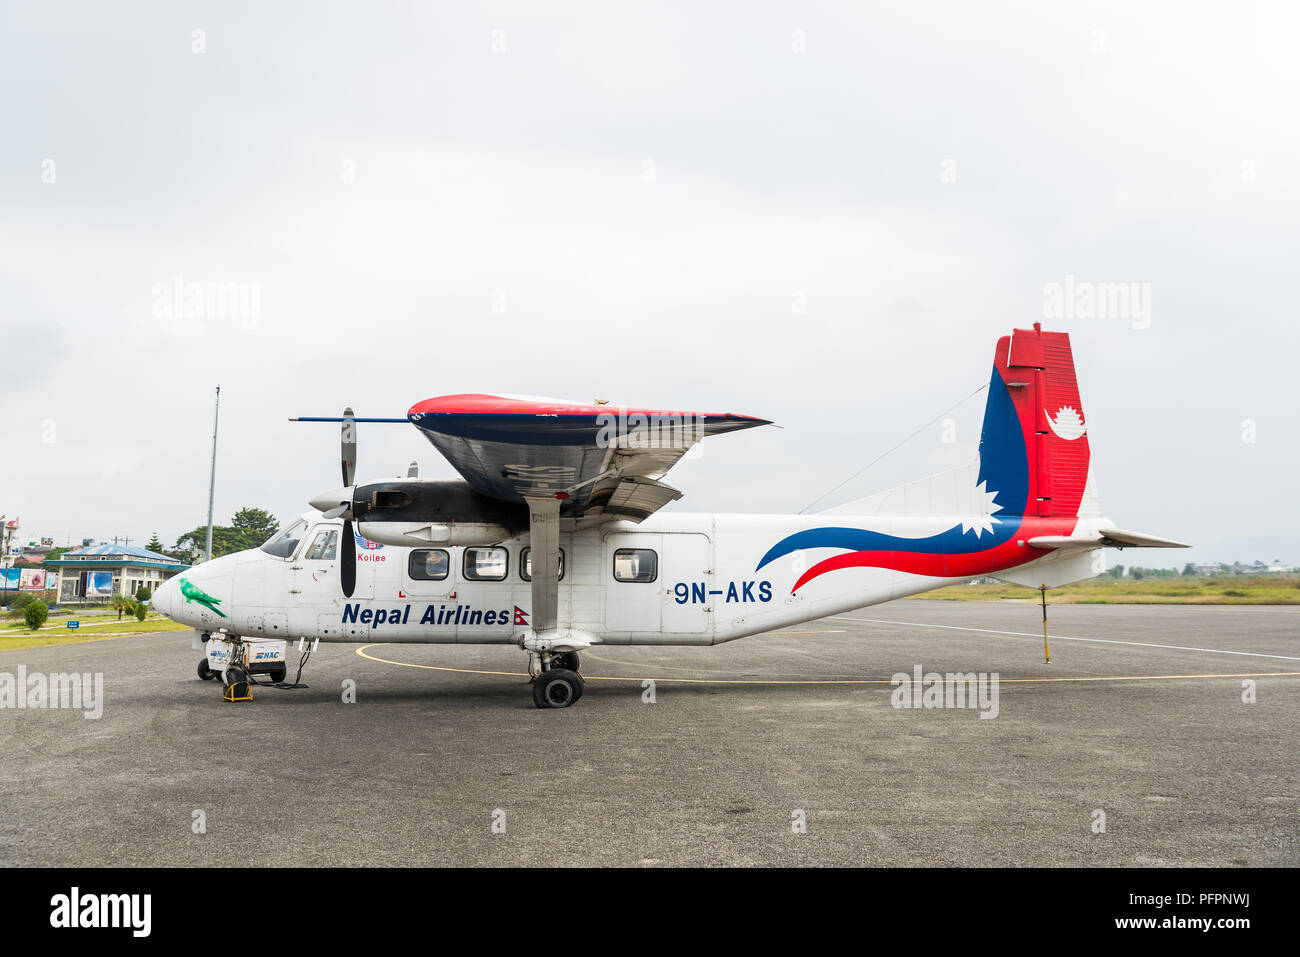 POKHARA, NEPAL - CIRCA OCTOBER 2017: A Nepal Airlines Harbin Y-12E airplane at Pokhara Airport. The rear left tyre seems to be punctured. - Stock Image